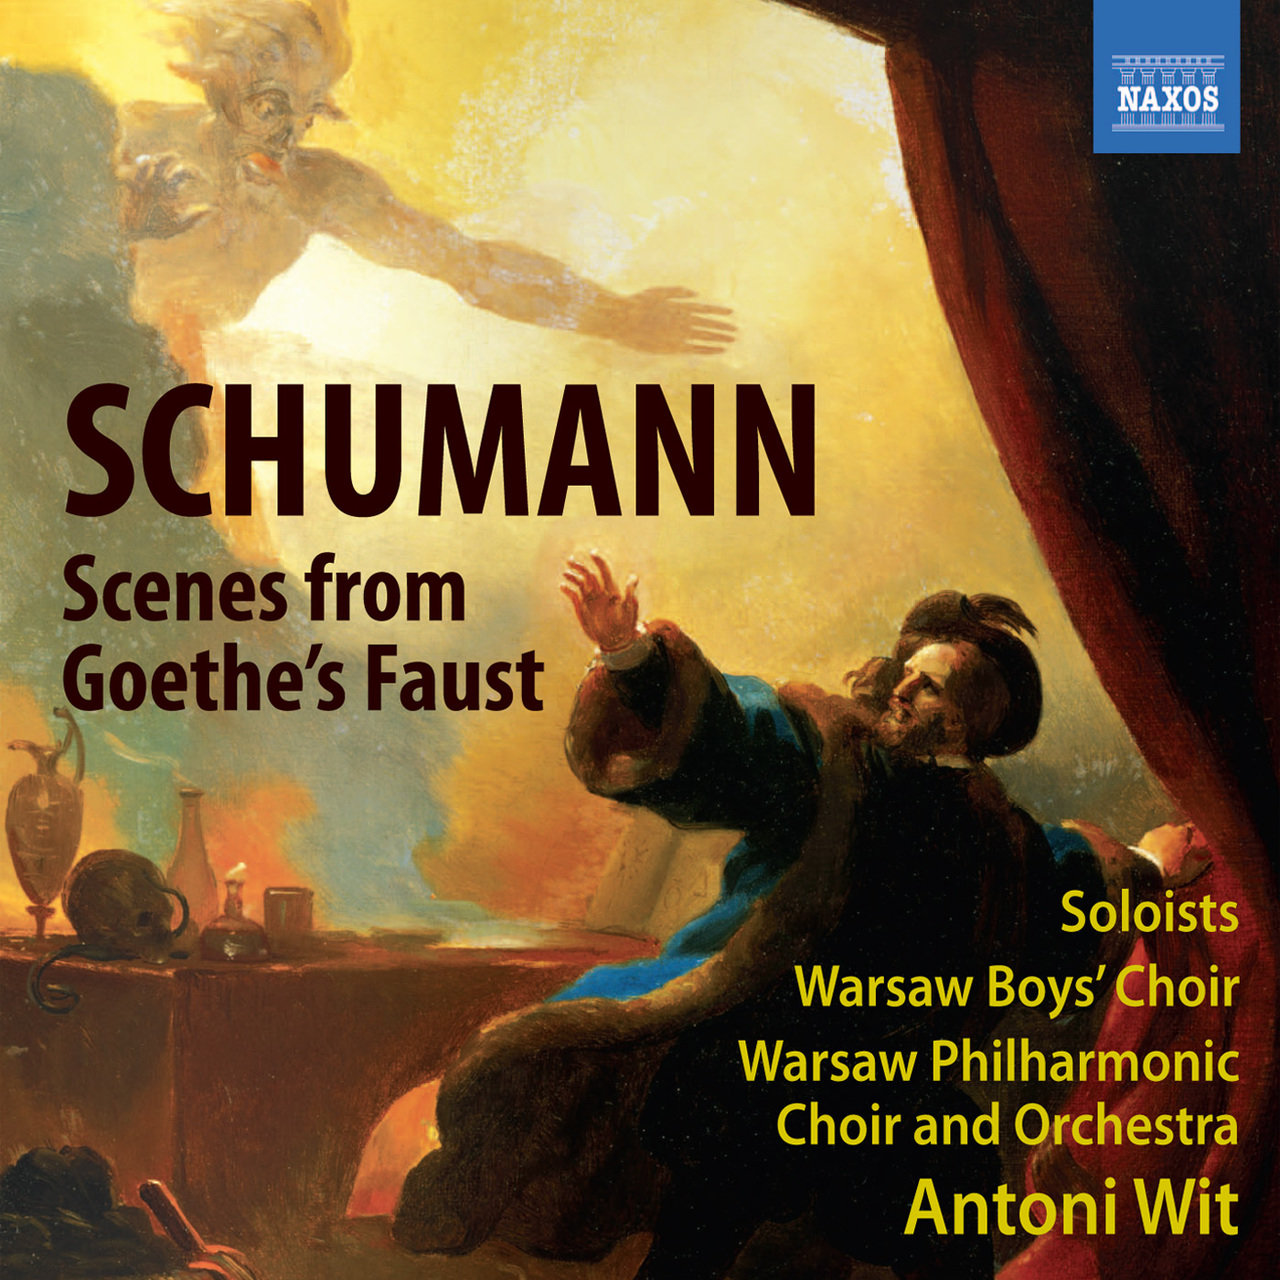 Faust Garten Listen To Schumann Scenes From Goethe S Faust By Antoni Wit On Tidal